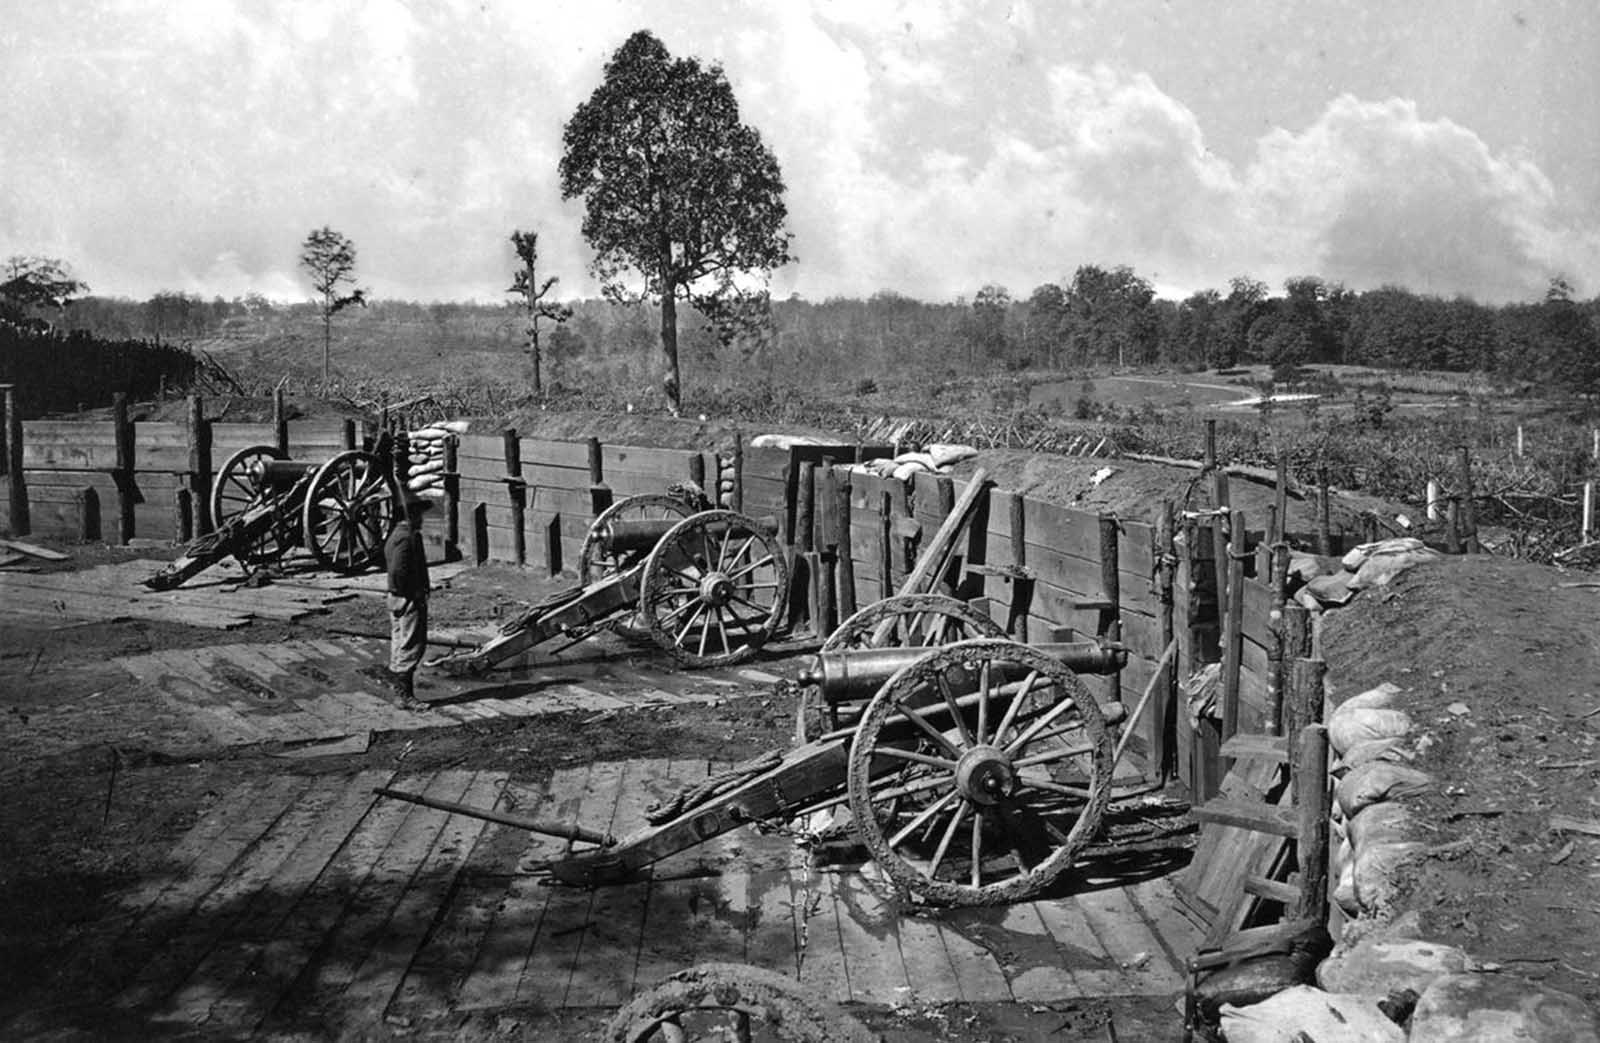 Rebel fortifications in front of Atlanta, Georgia, in 1863 or 1864.